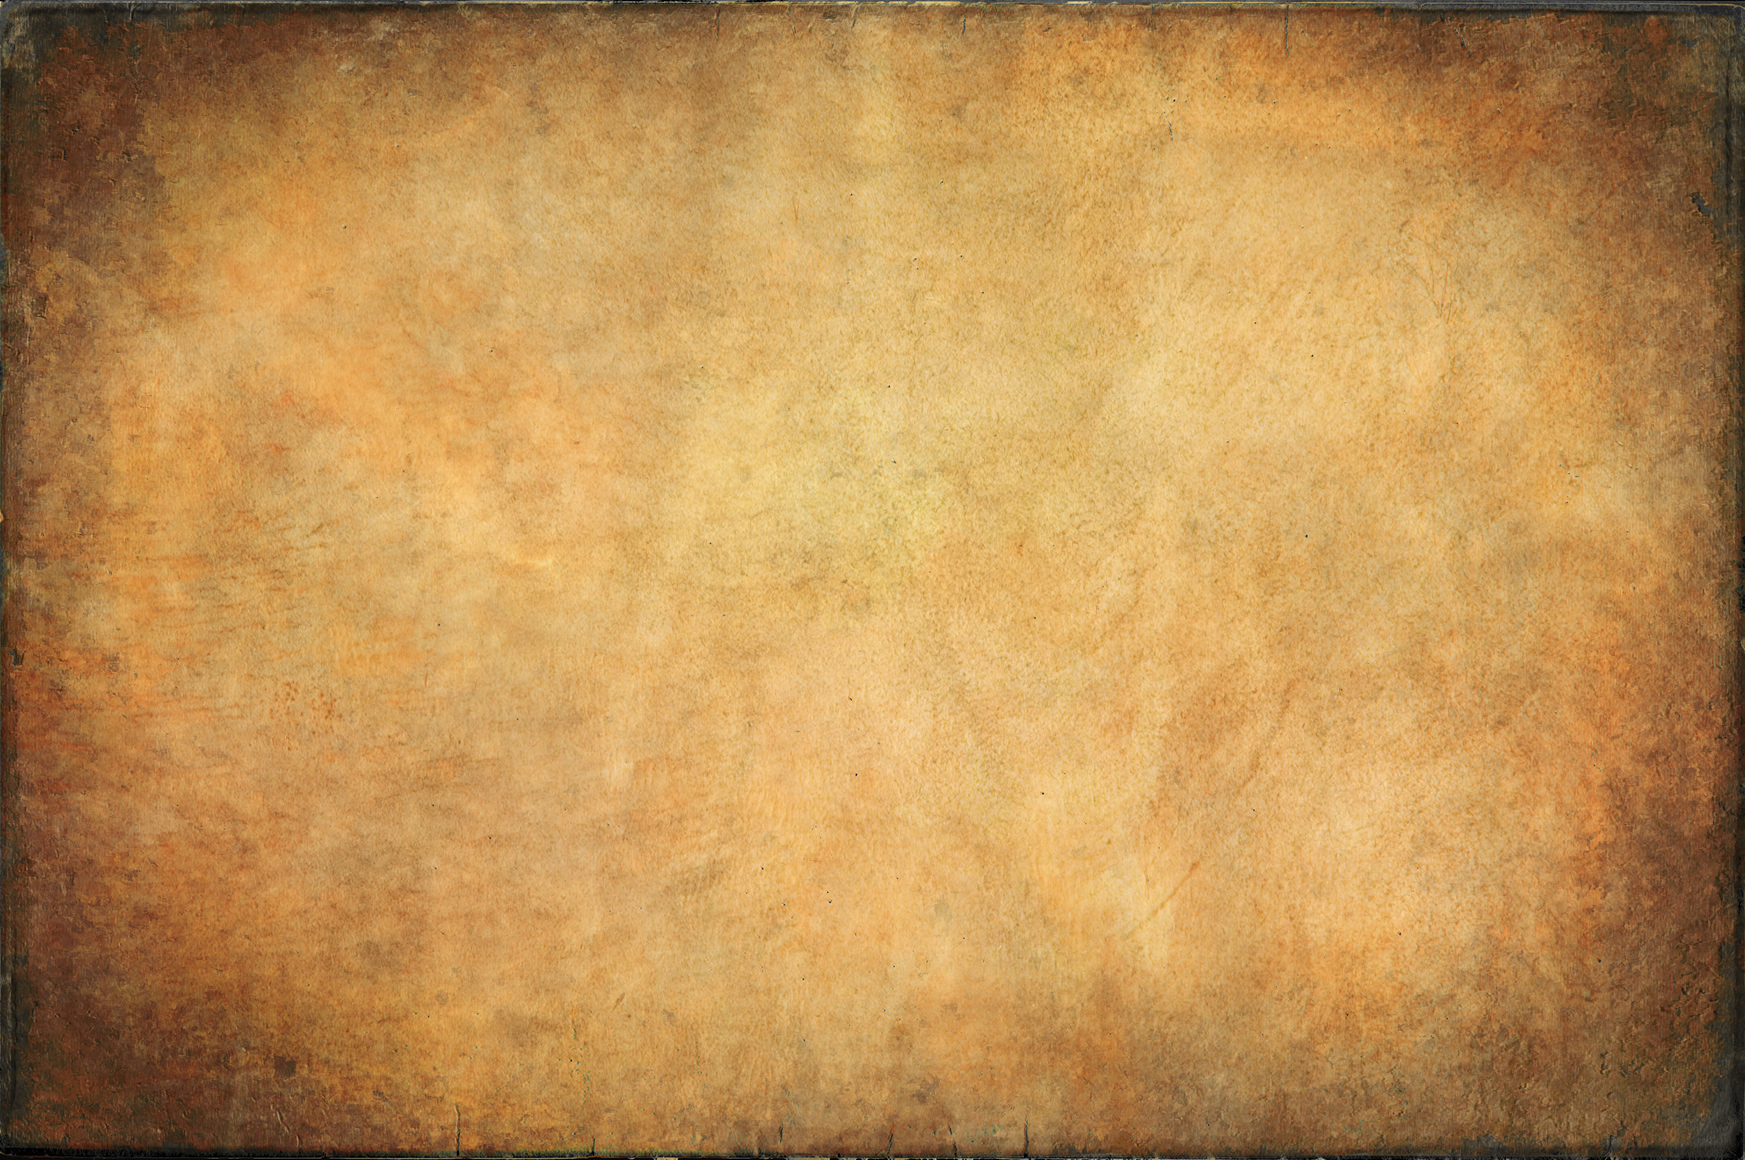 Leather texture background leather background leather background - Image wallpaper ...